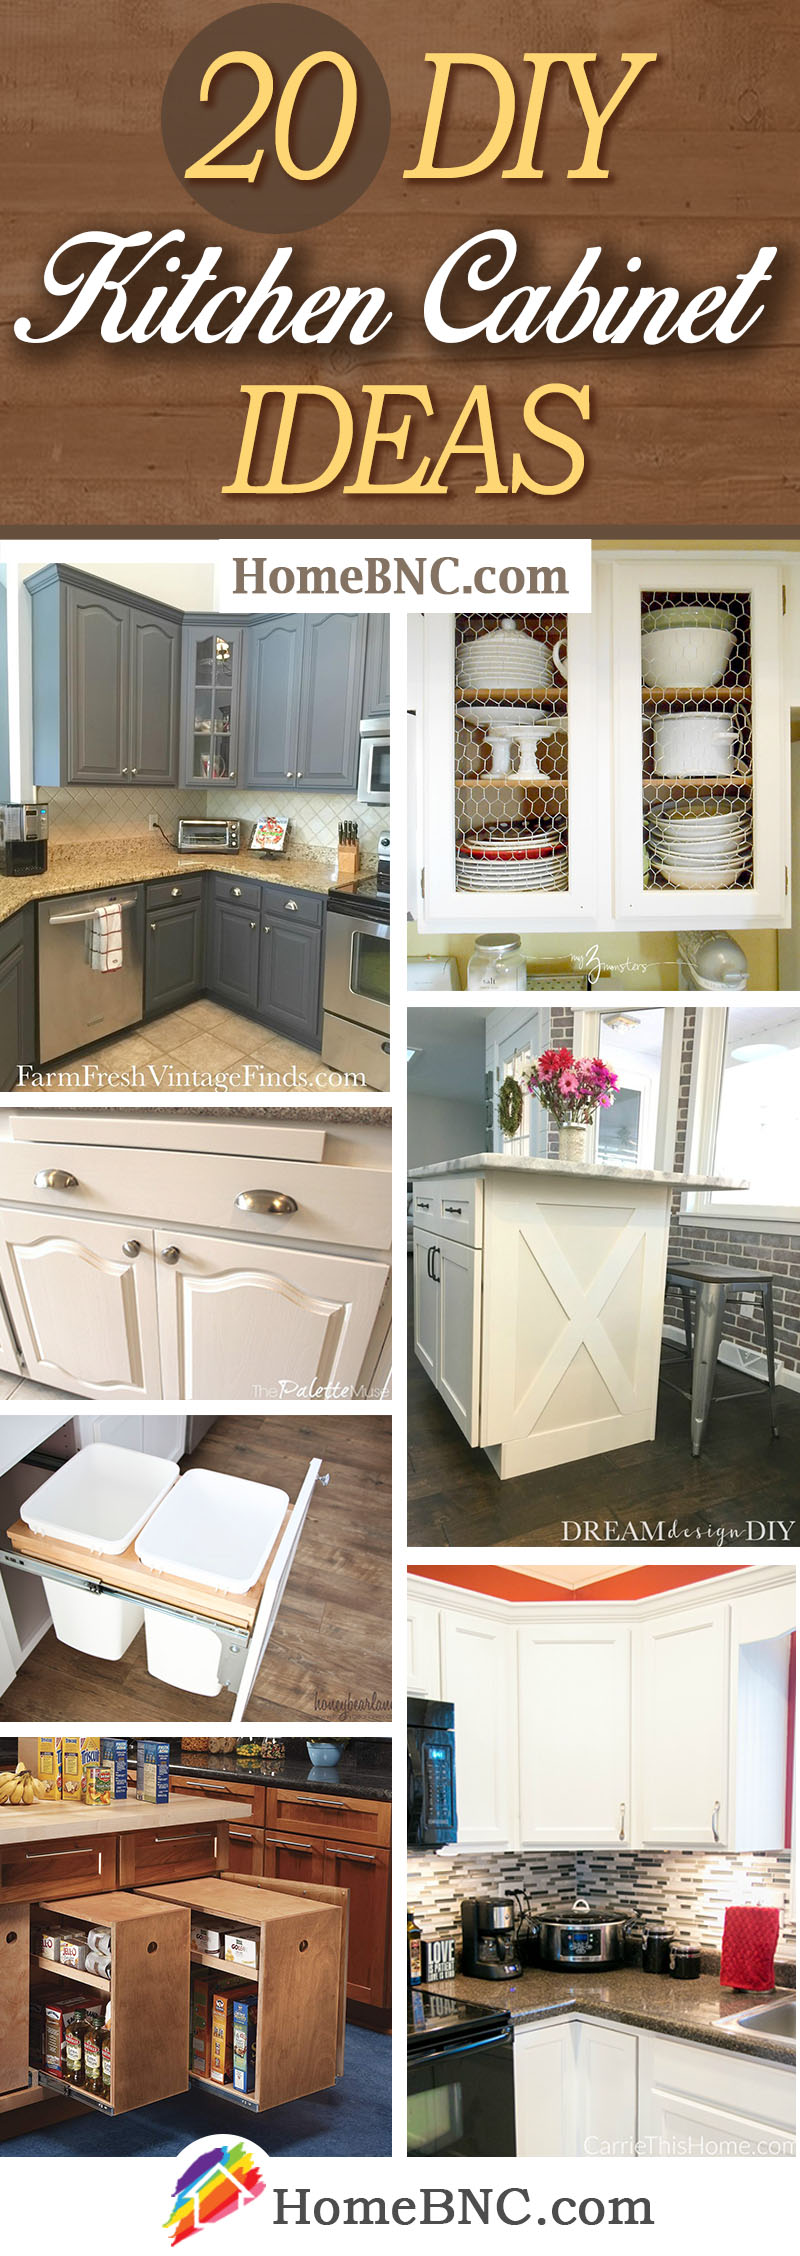 20 Best Diy Kitchen Cabinet Ideas And Designs For 2021